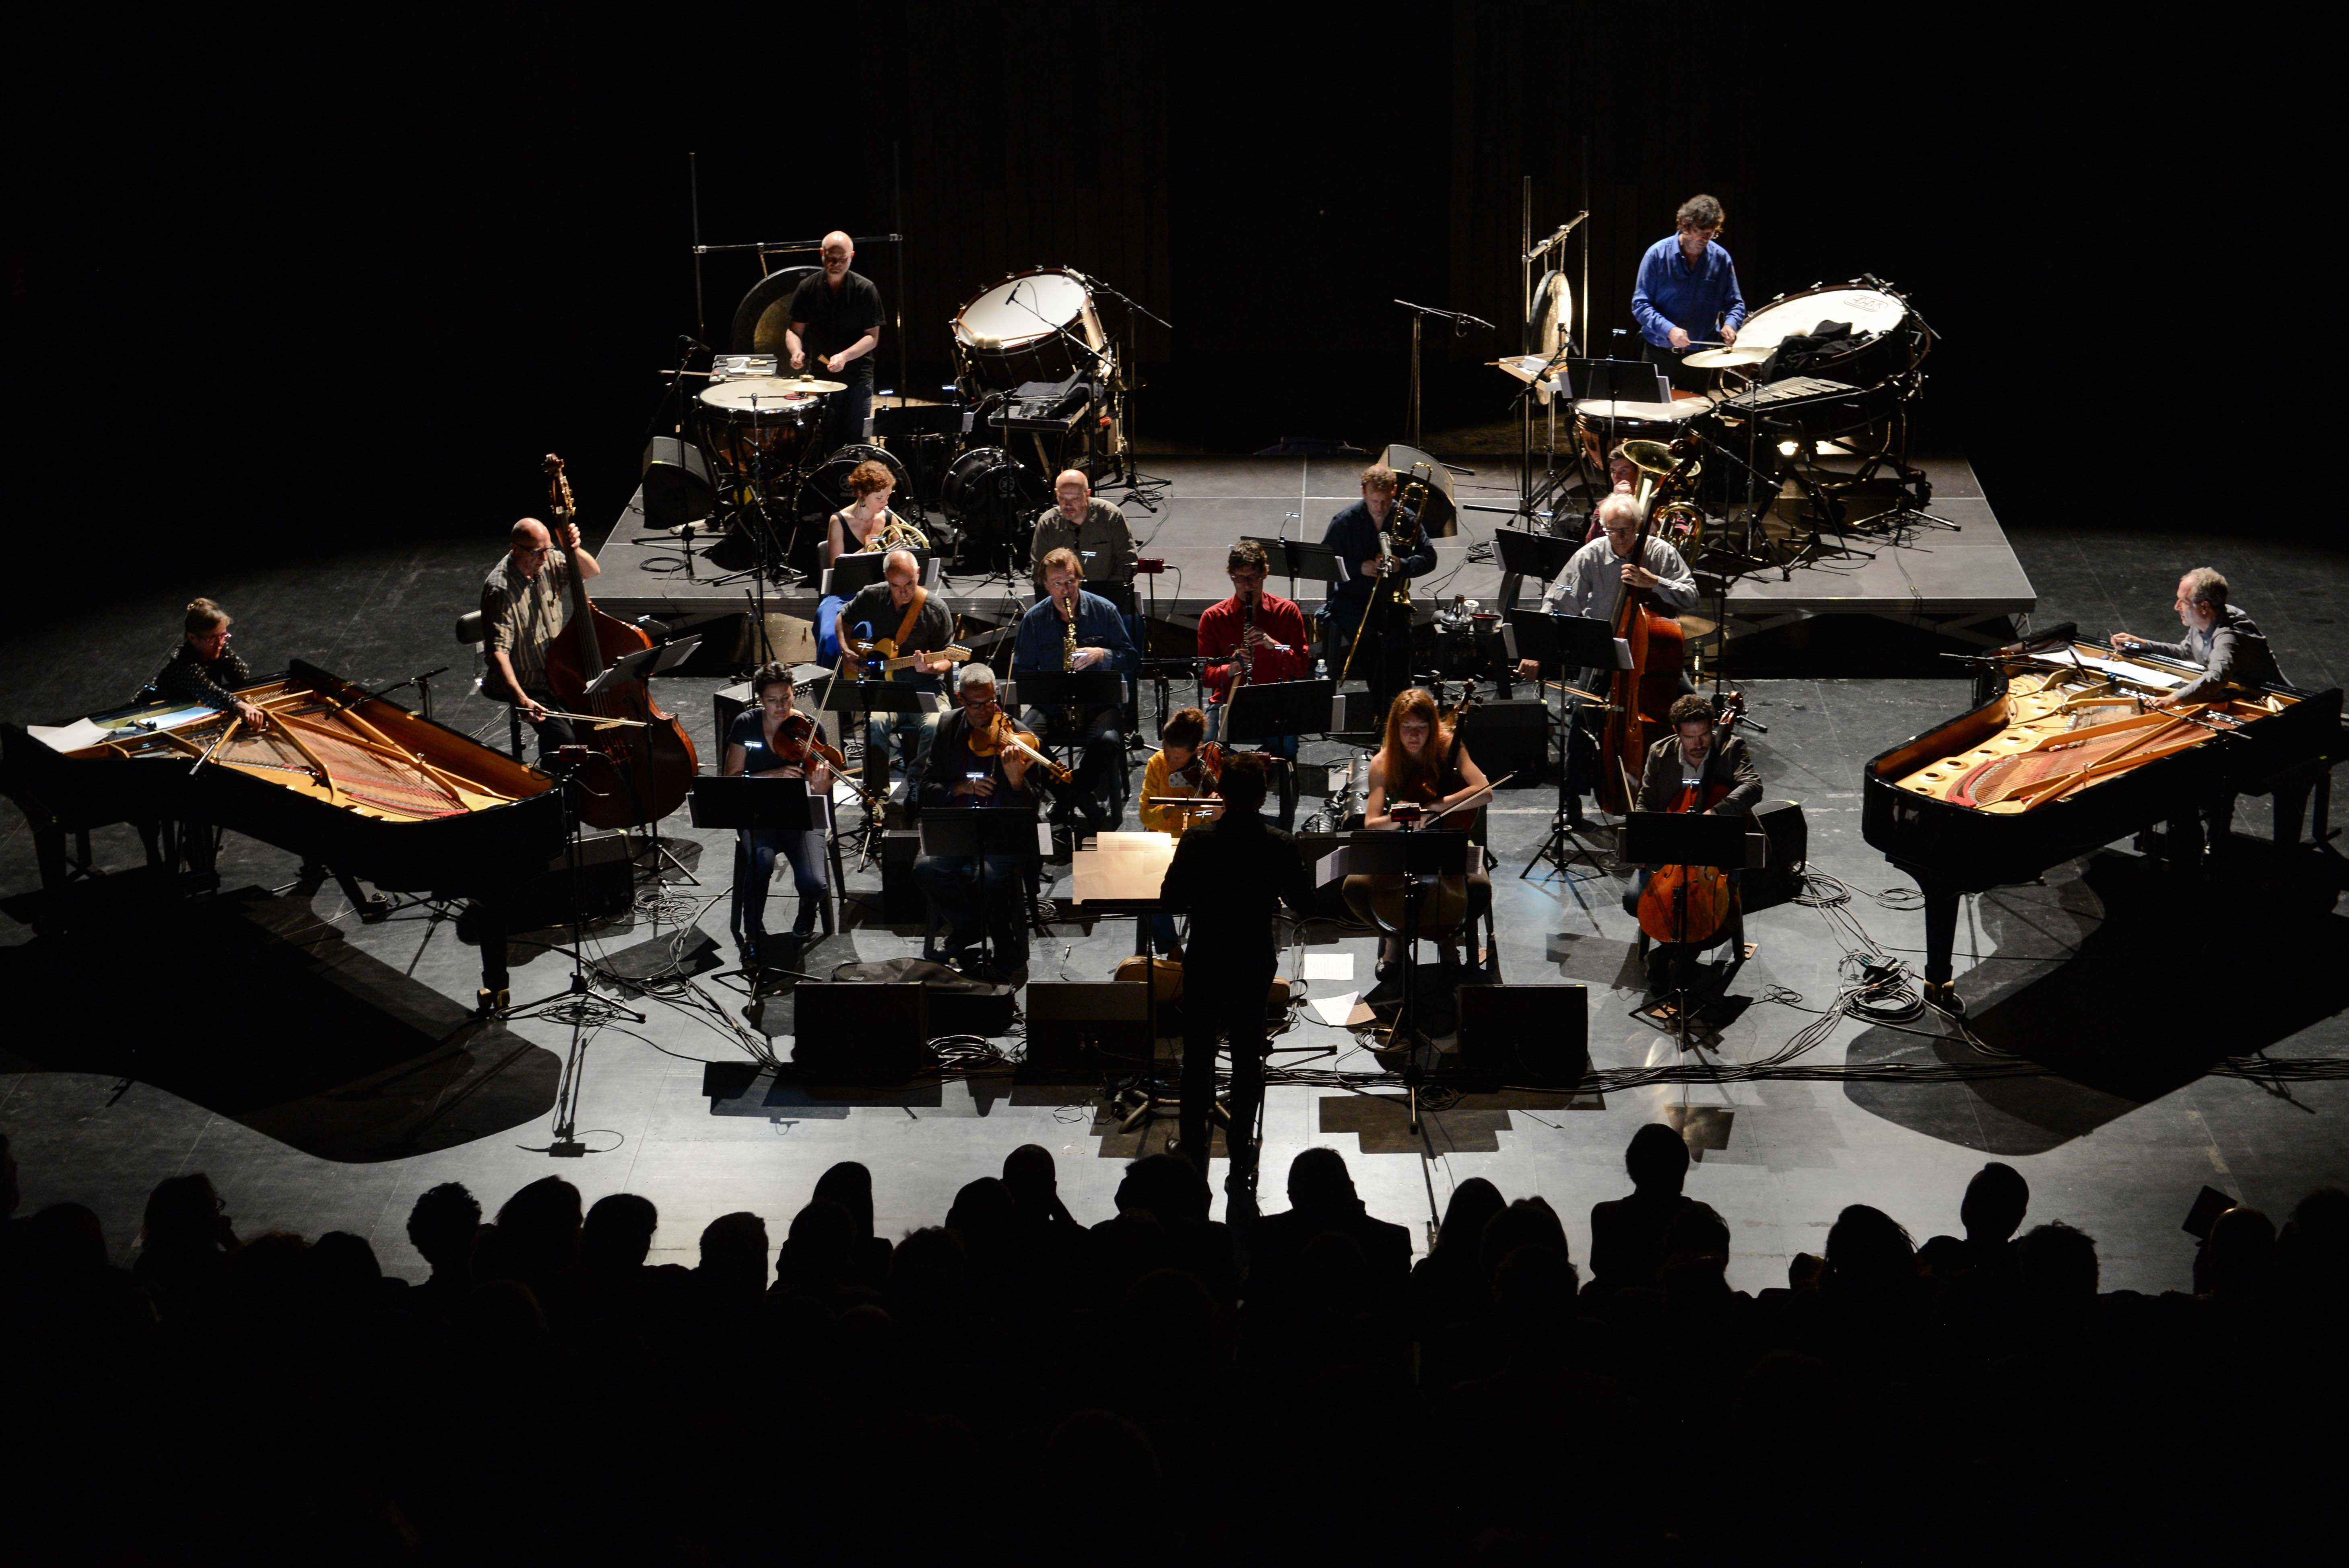 Ensemble 2e2m performed at Sound Festival 2018.